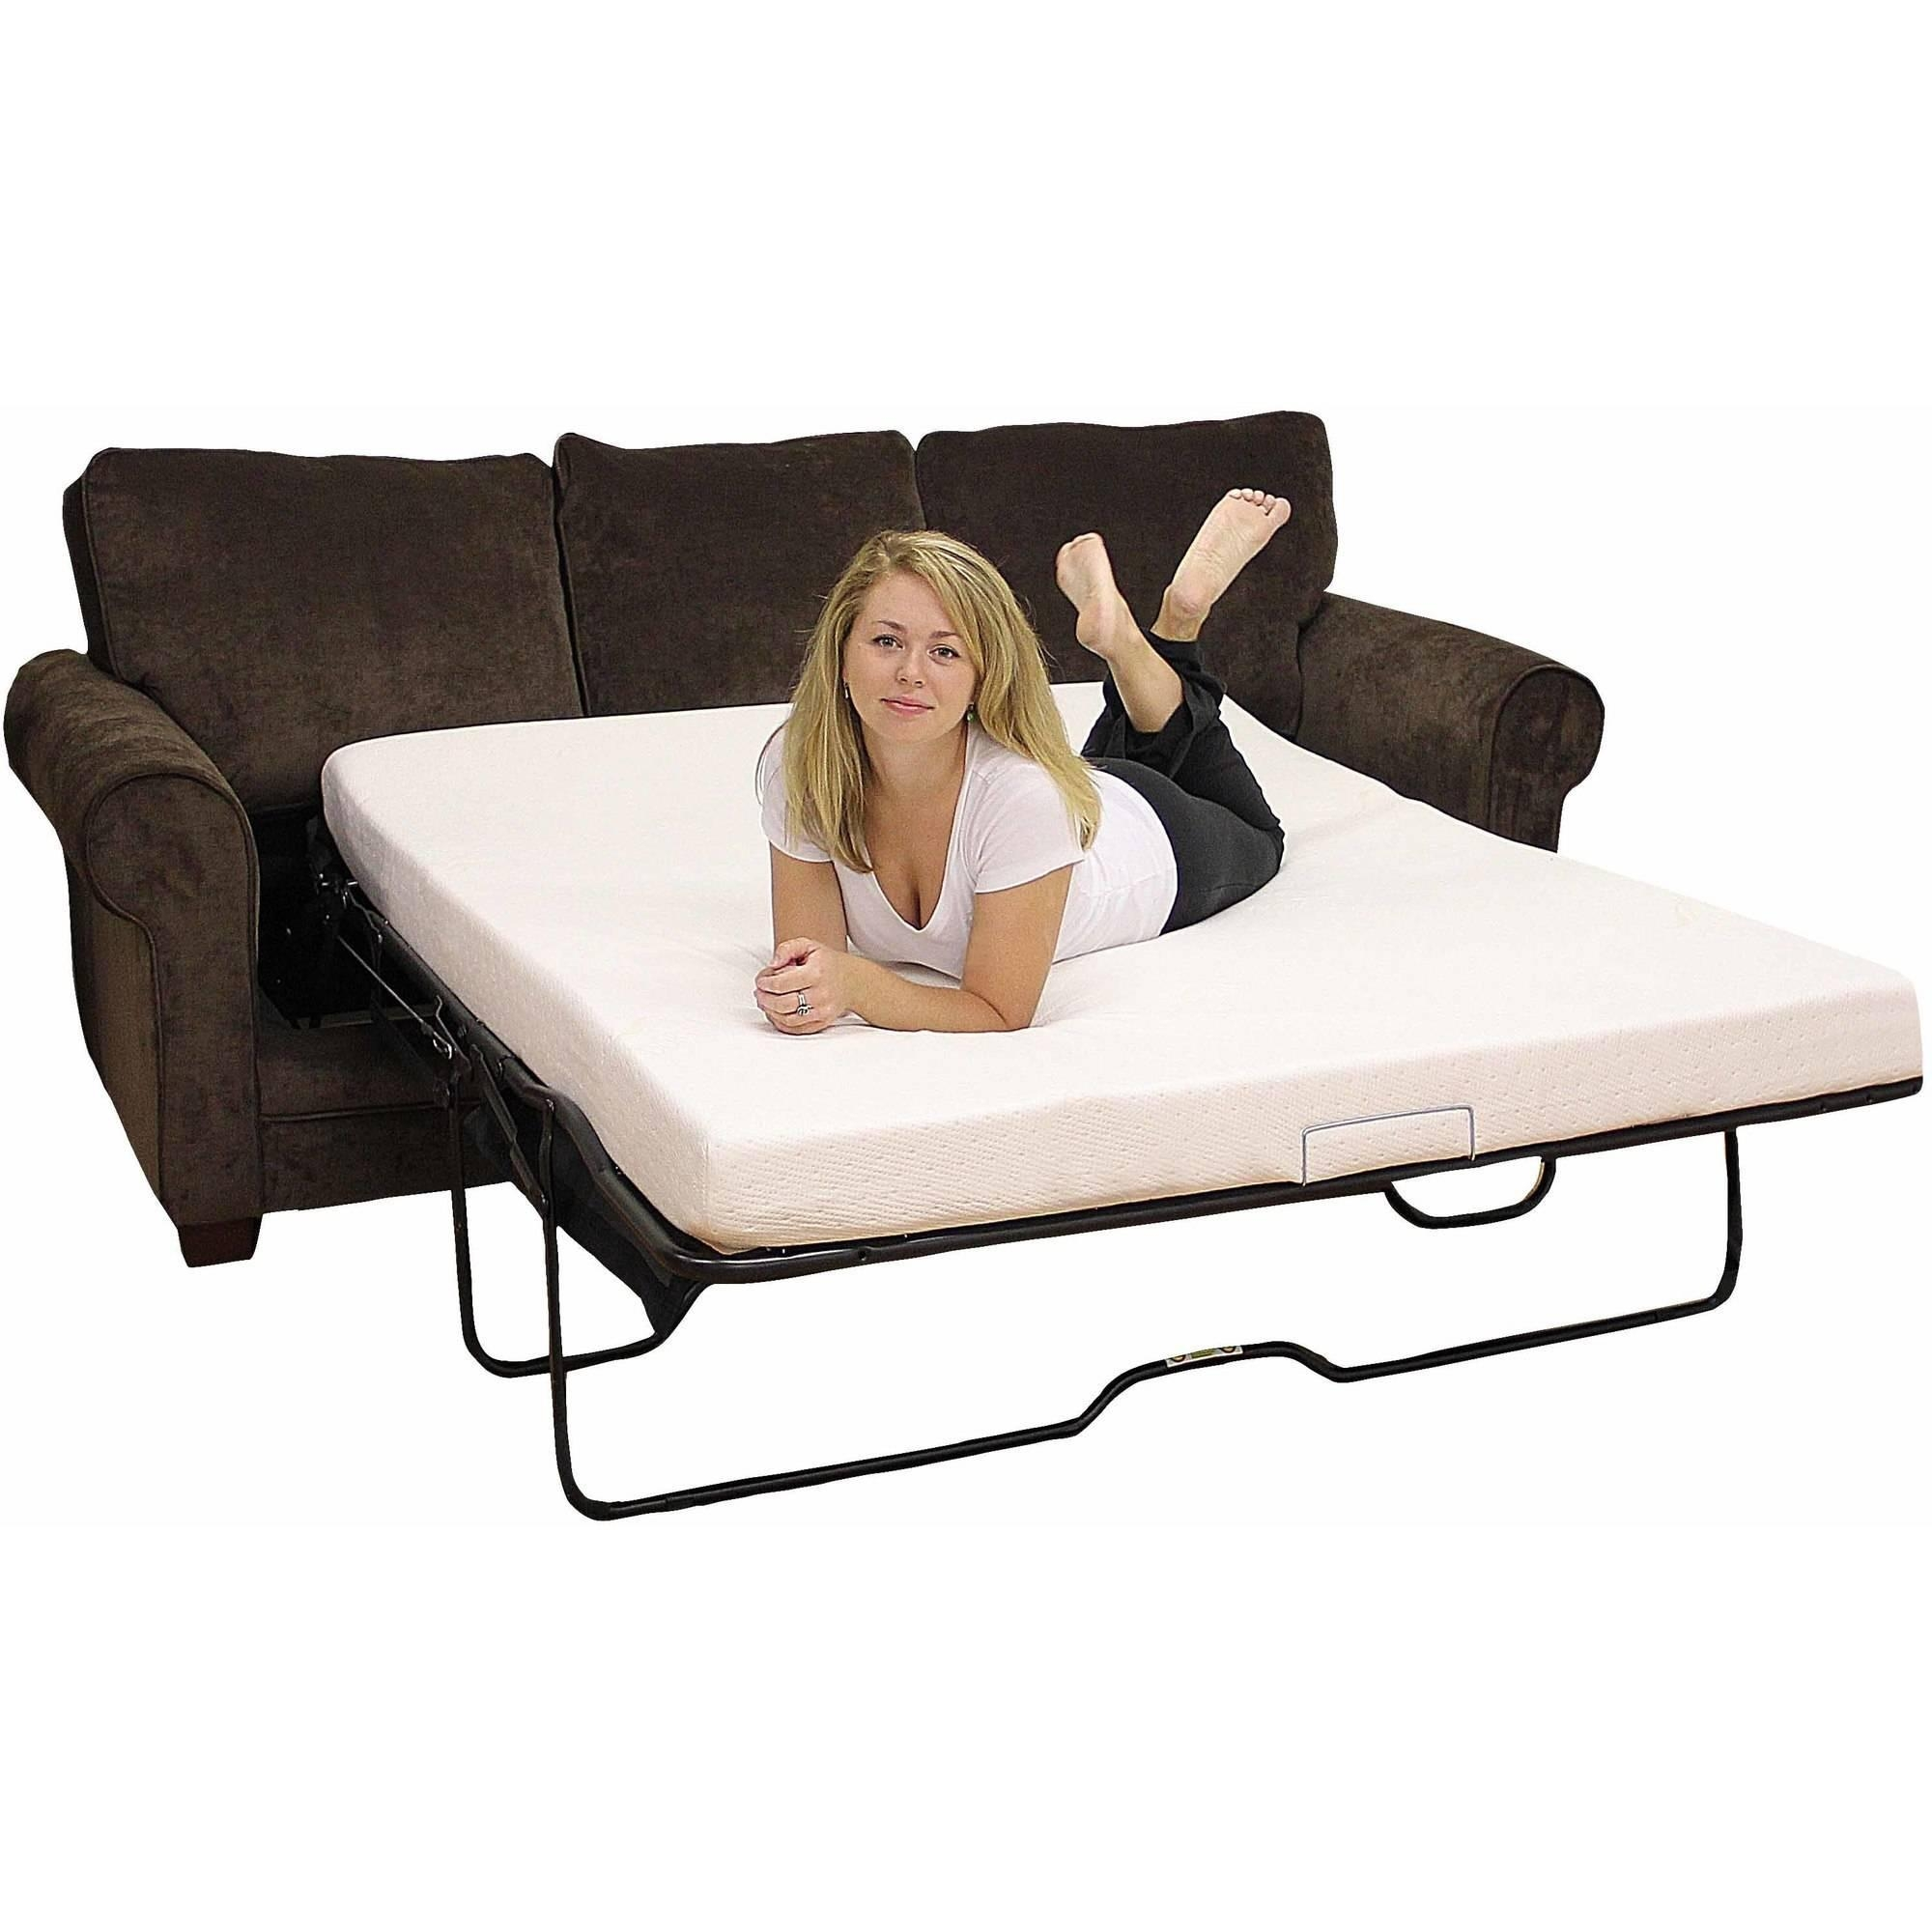 Sofa: Modern Look With A Low Profile Style With Walmart Sofa Bed Inside Intex Sleep Sofas (View 19 of 20)